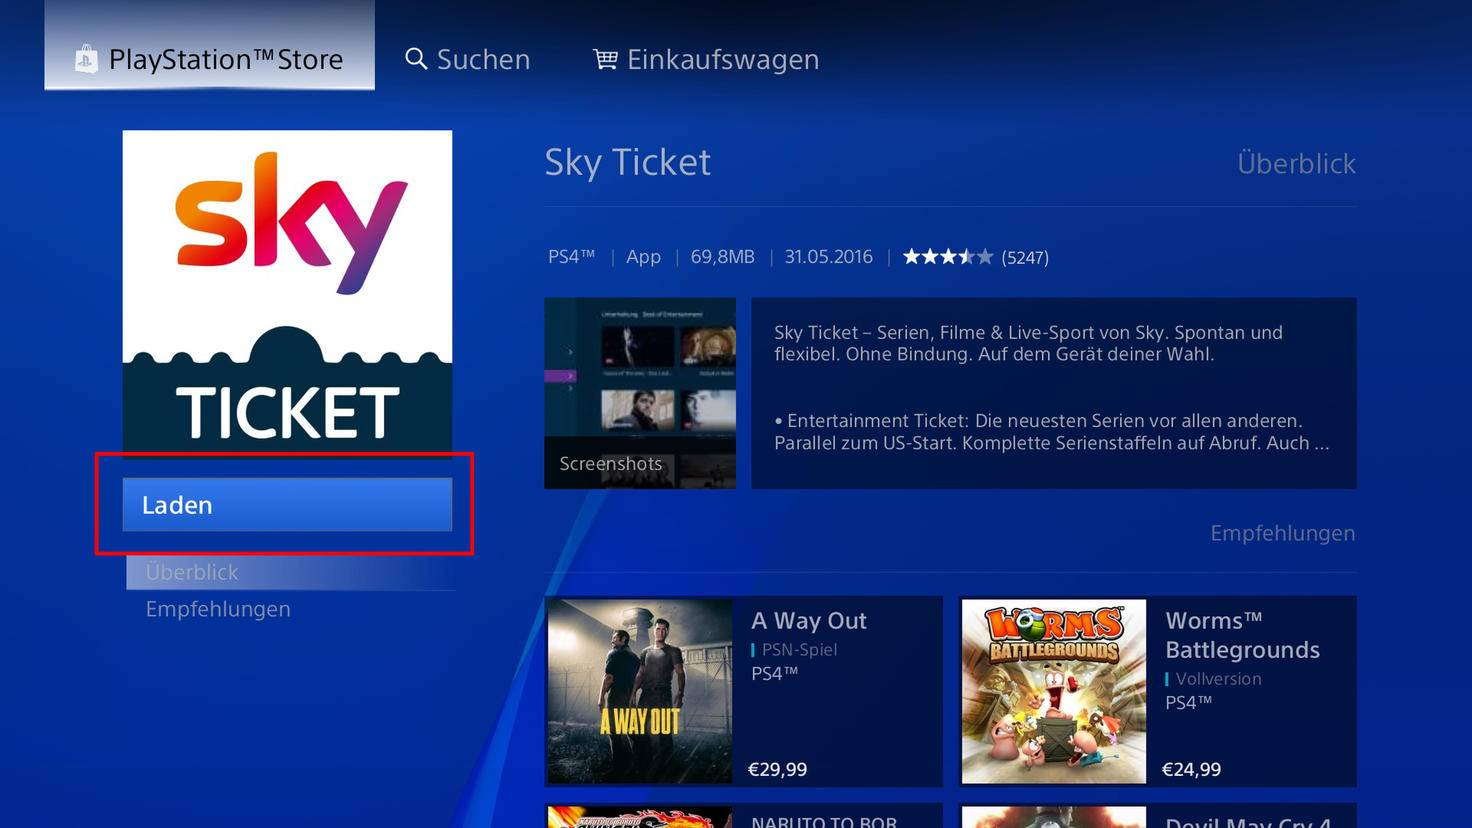 PlayStation Sky Ticket 3